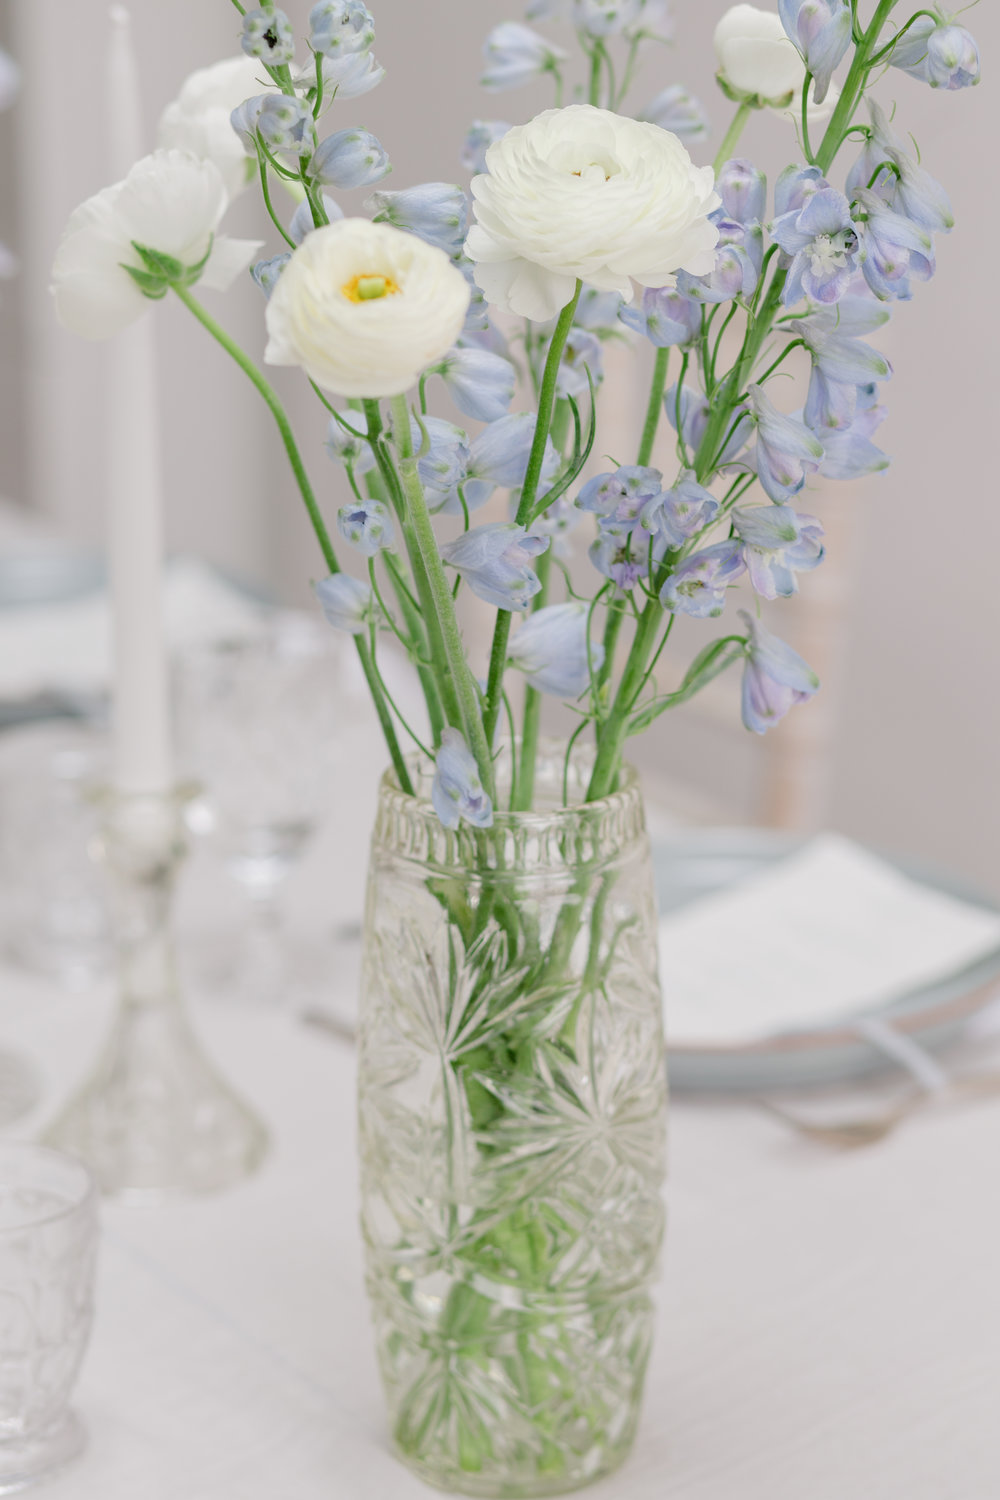 The Timeless Stylist-UK Wedding Design and Styling-Simple and Elegant Summer Tablescape -Blue and White Wedding Inspiration